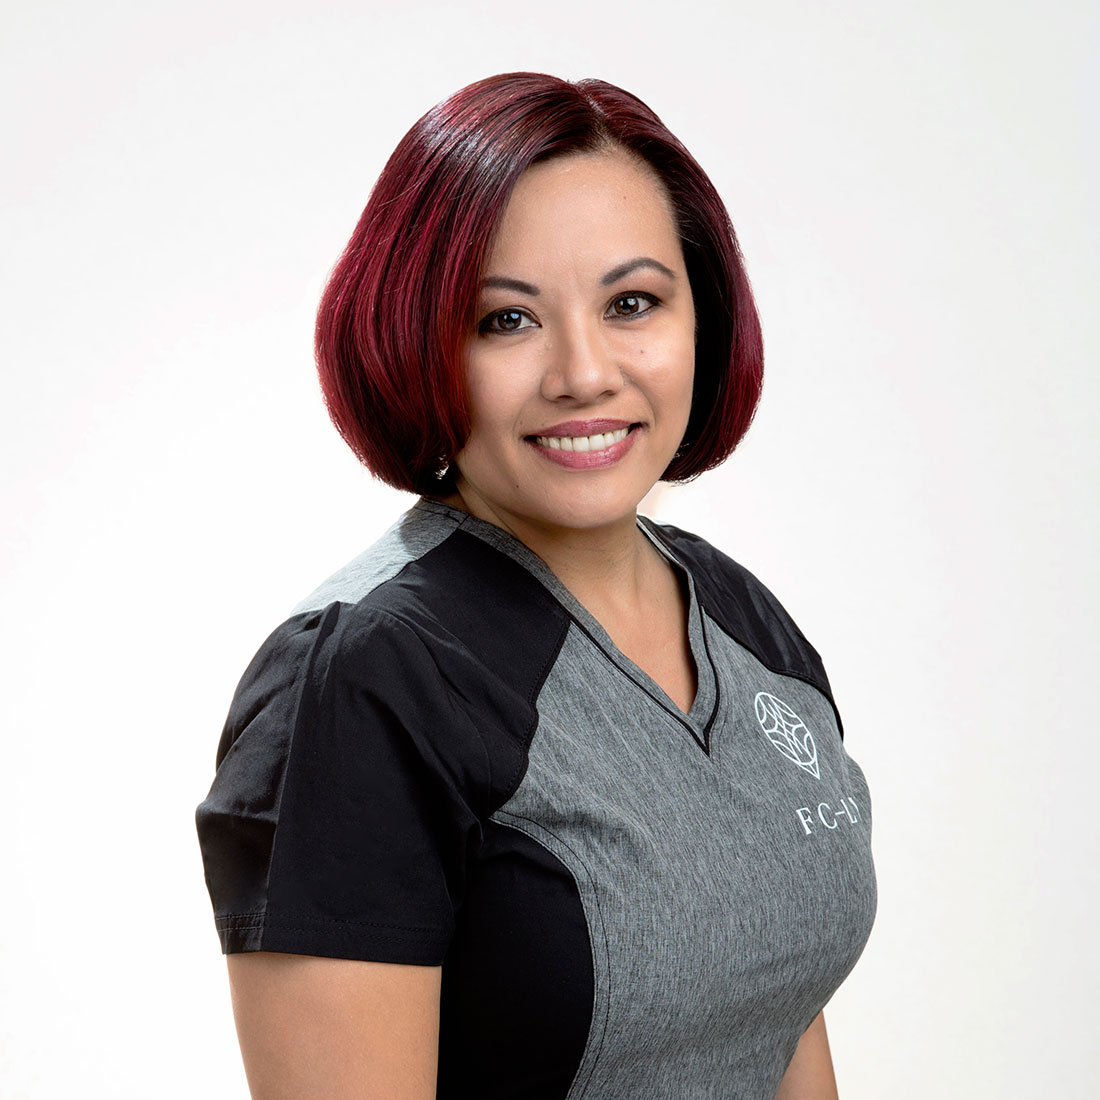 Arlyn Garcia coordinates IVF for egg donors and gestational carriers